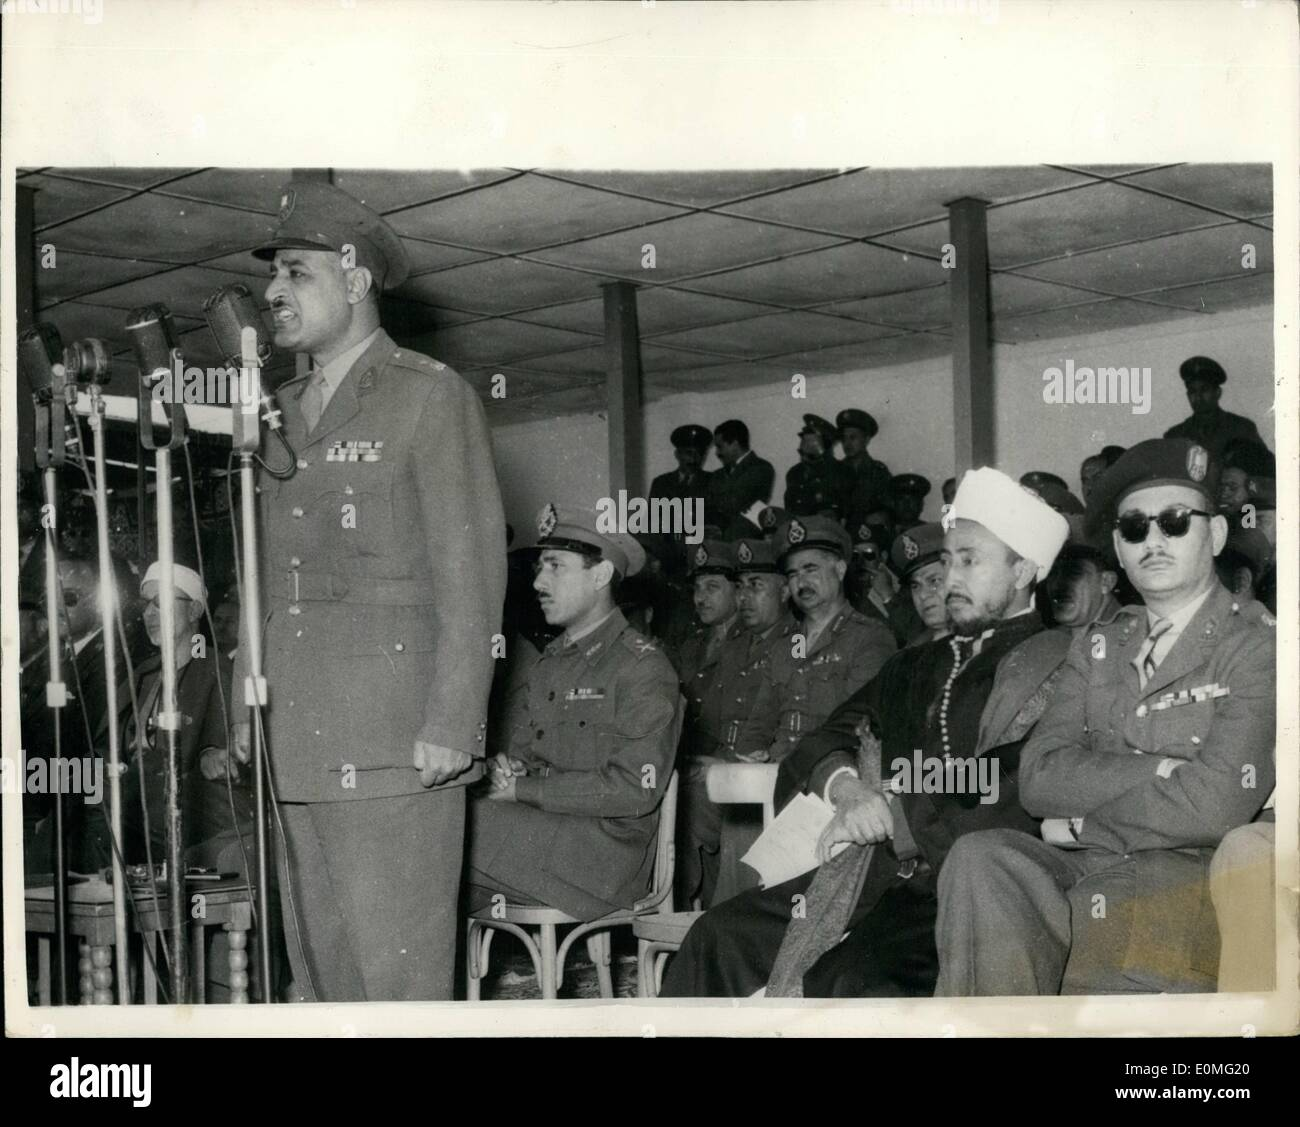 Mar. 03, 1955 - Egyptian Prime Minister attends ceremony at Shallufa Barracks: Prime Minister Gamal Abdel Nasser - Stock Image